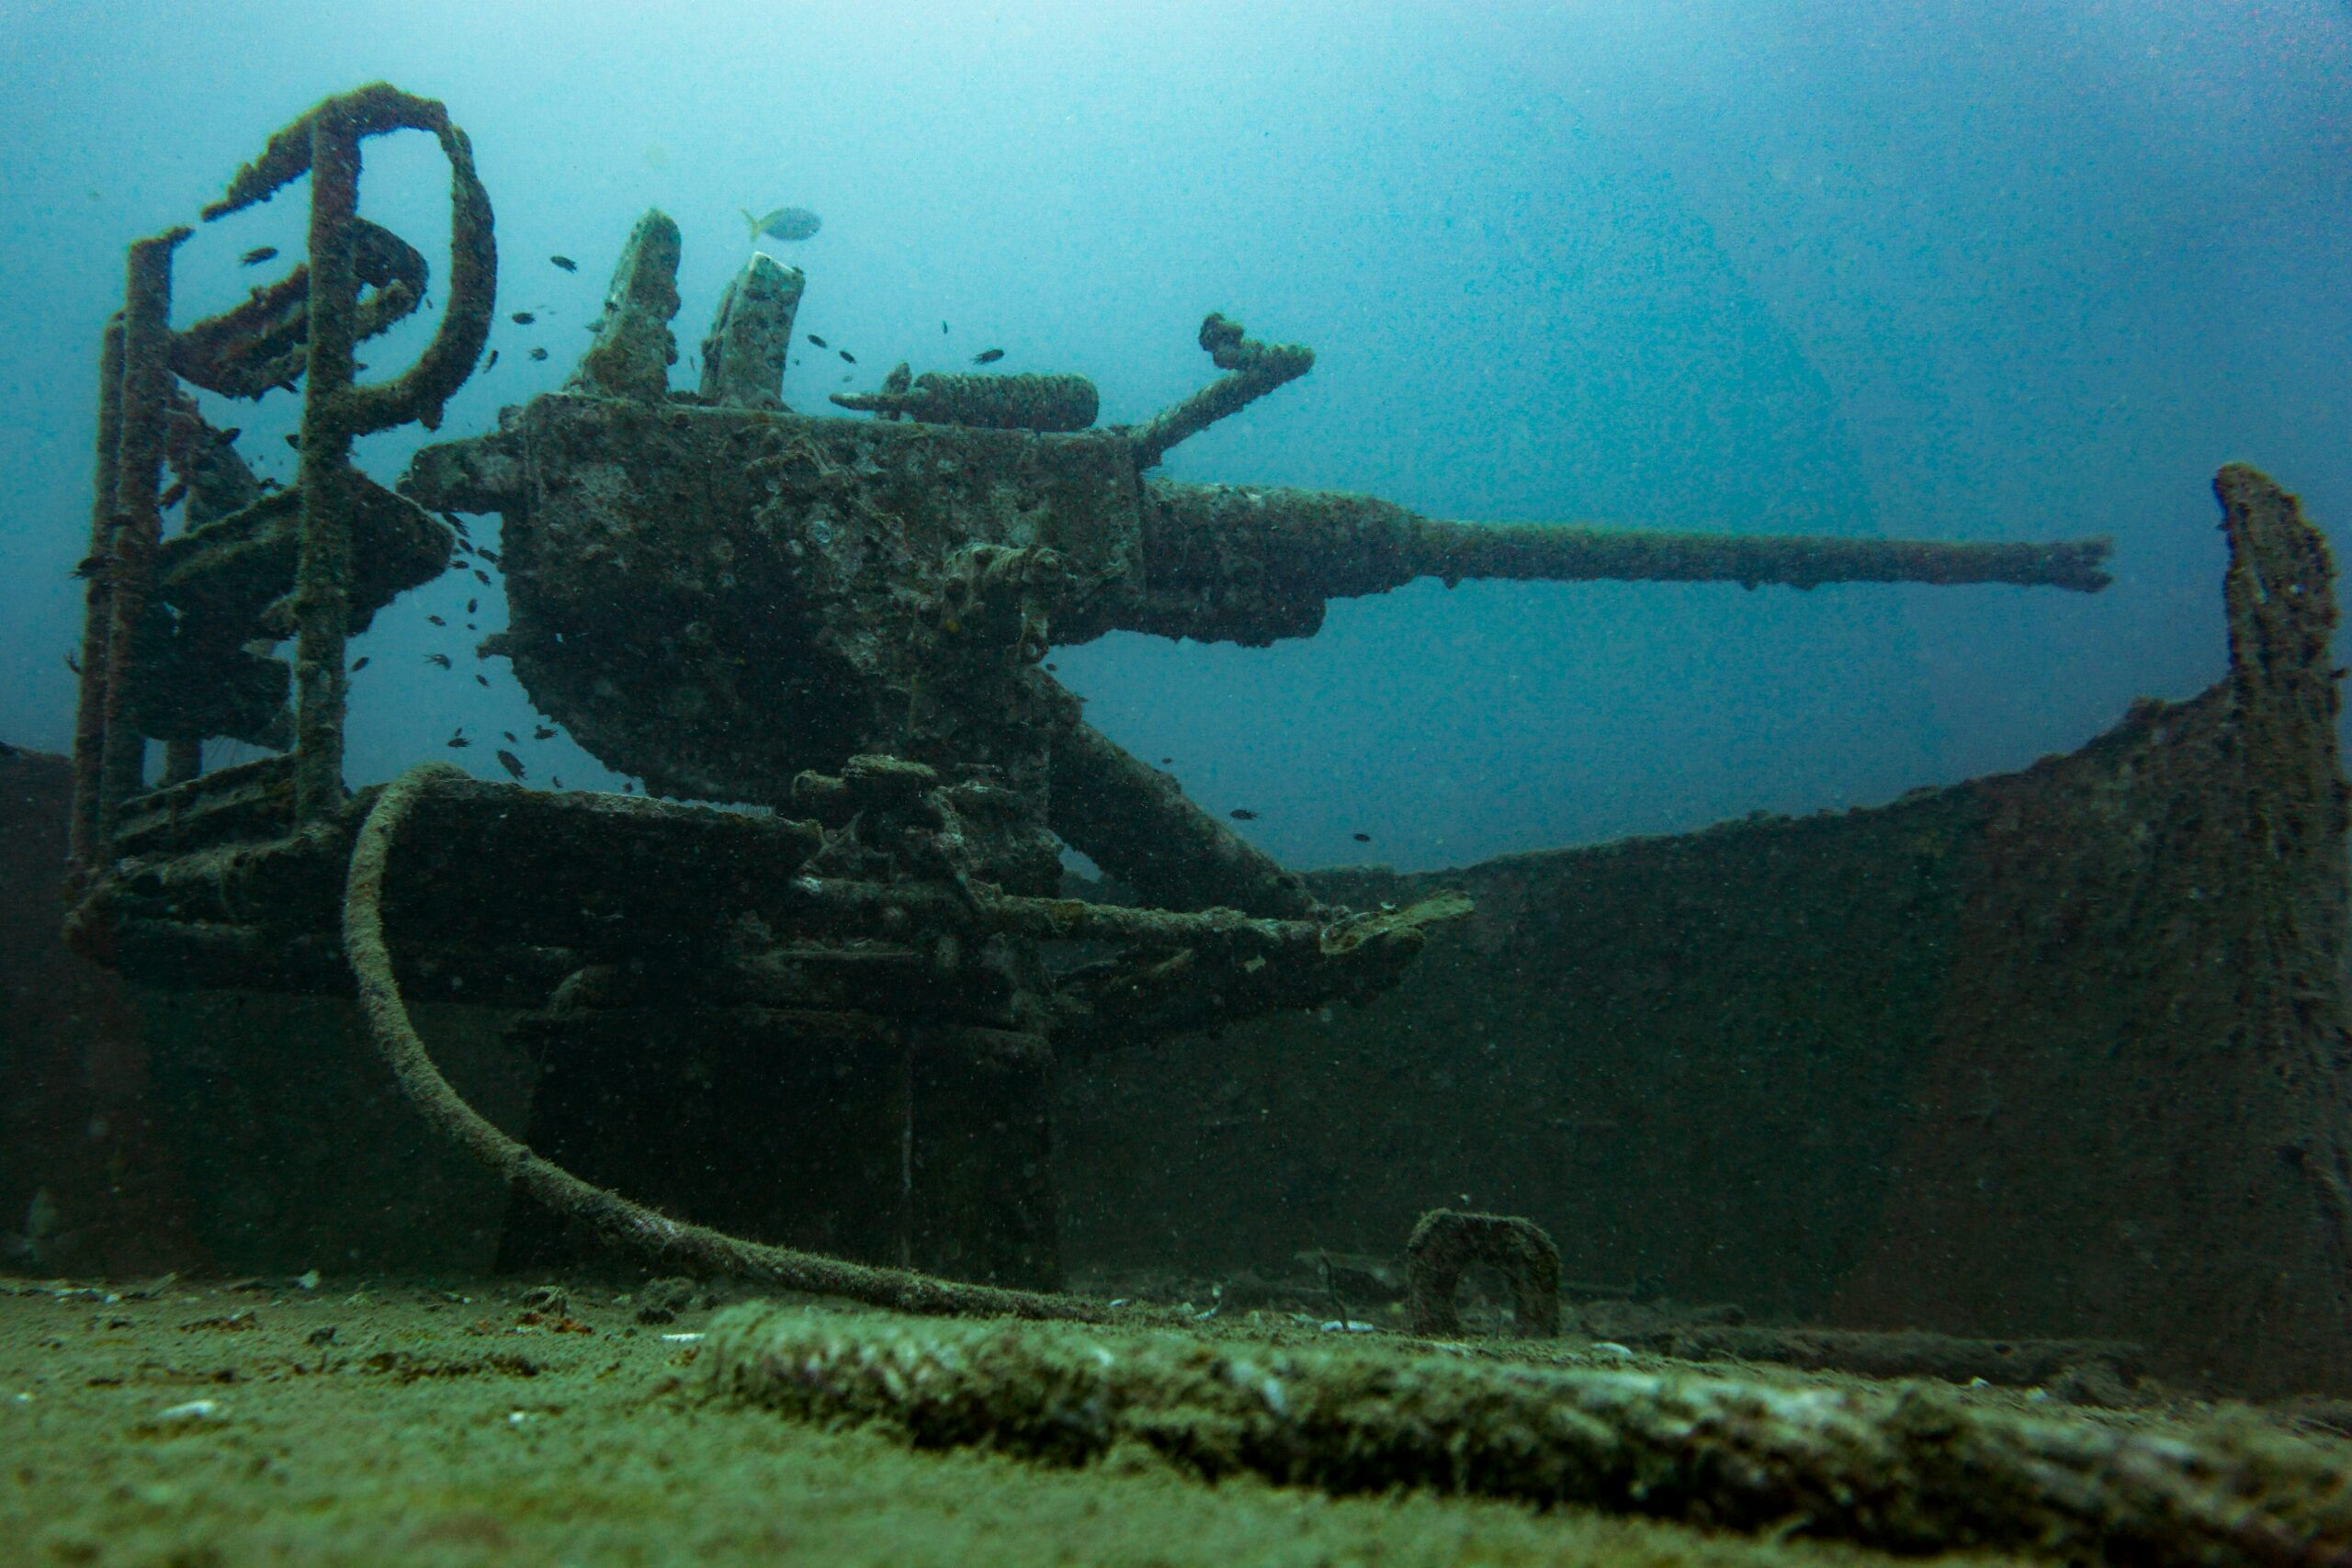 A Weapon in a Shipwreck Under Water - 7 Interesting Facts About The Ocean